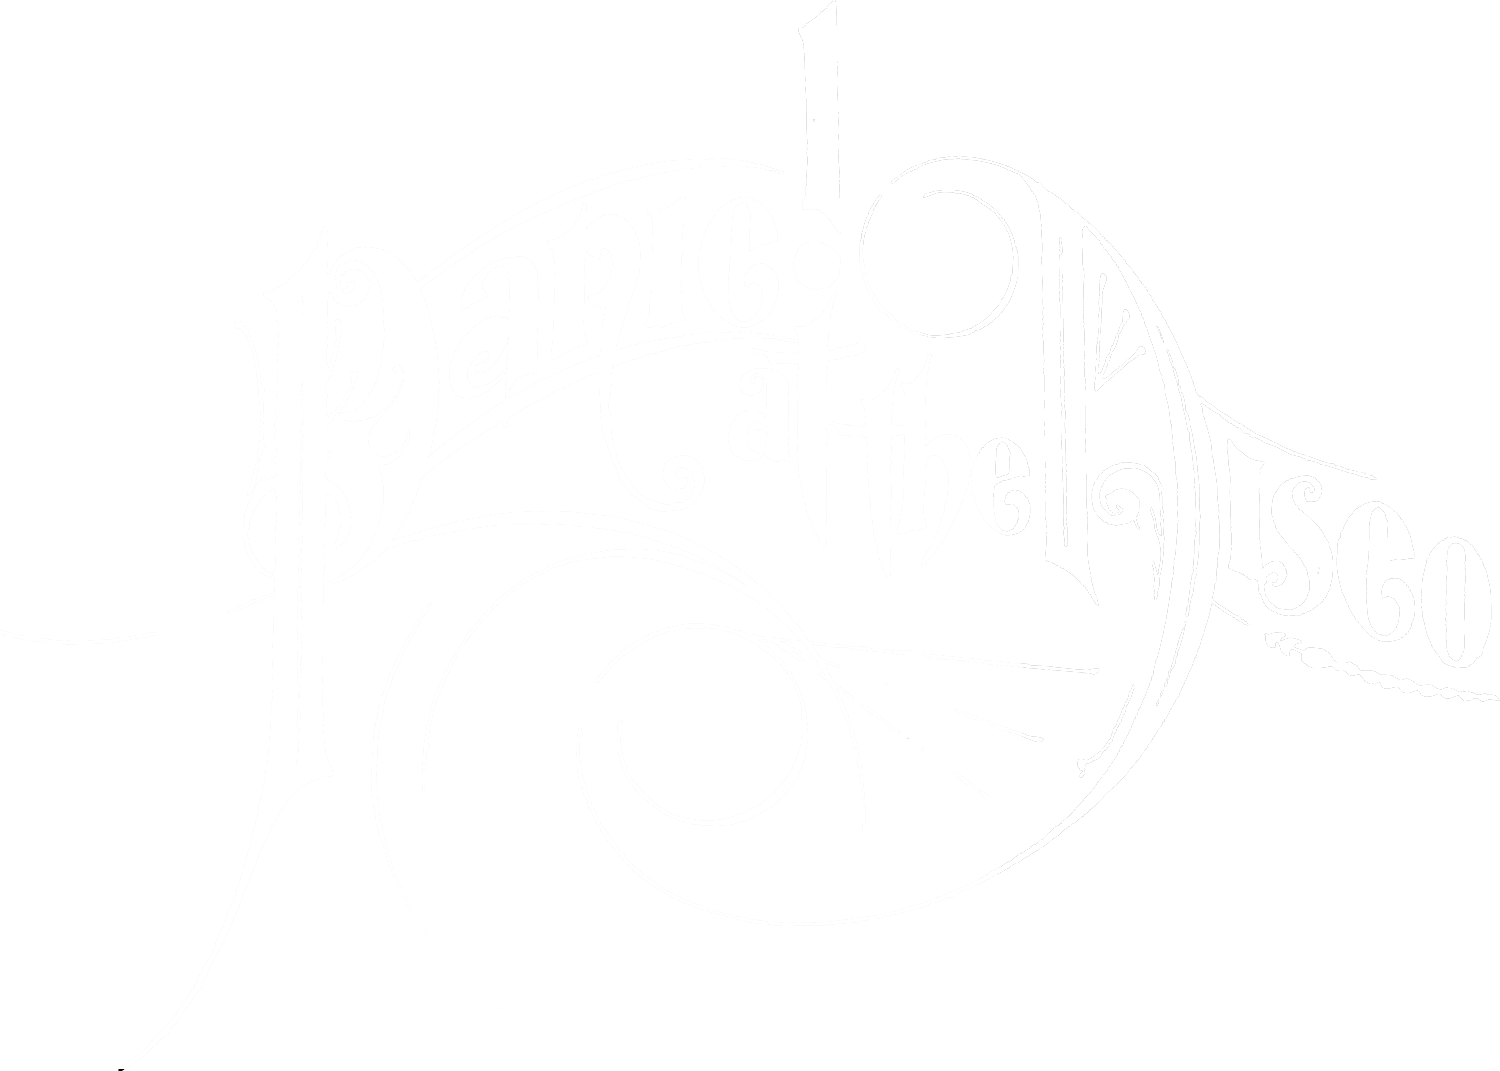 Panic At The Disco Logo Wallpaper Panic  at the disco logo pngPanic At The Disco Logo Wallpaper